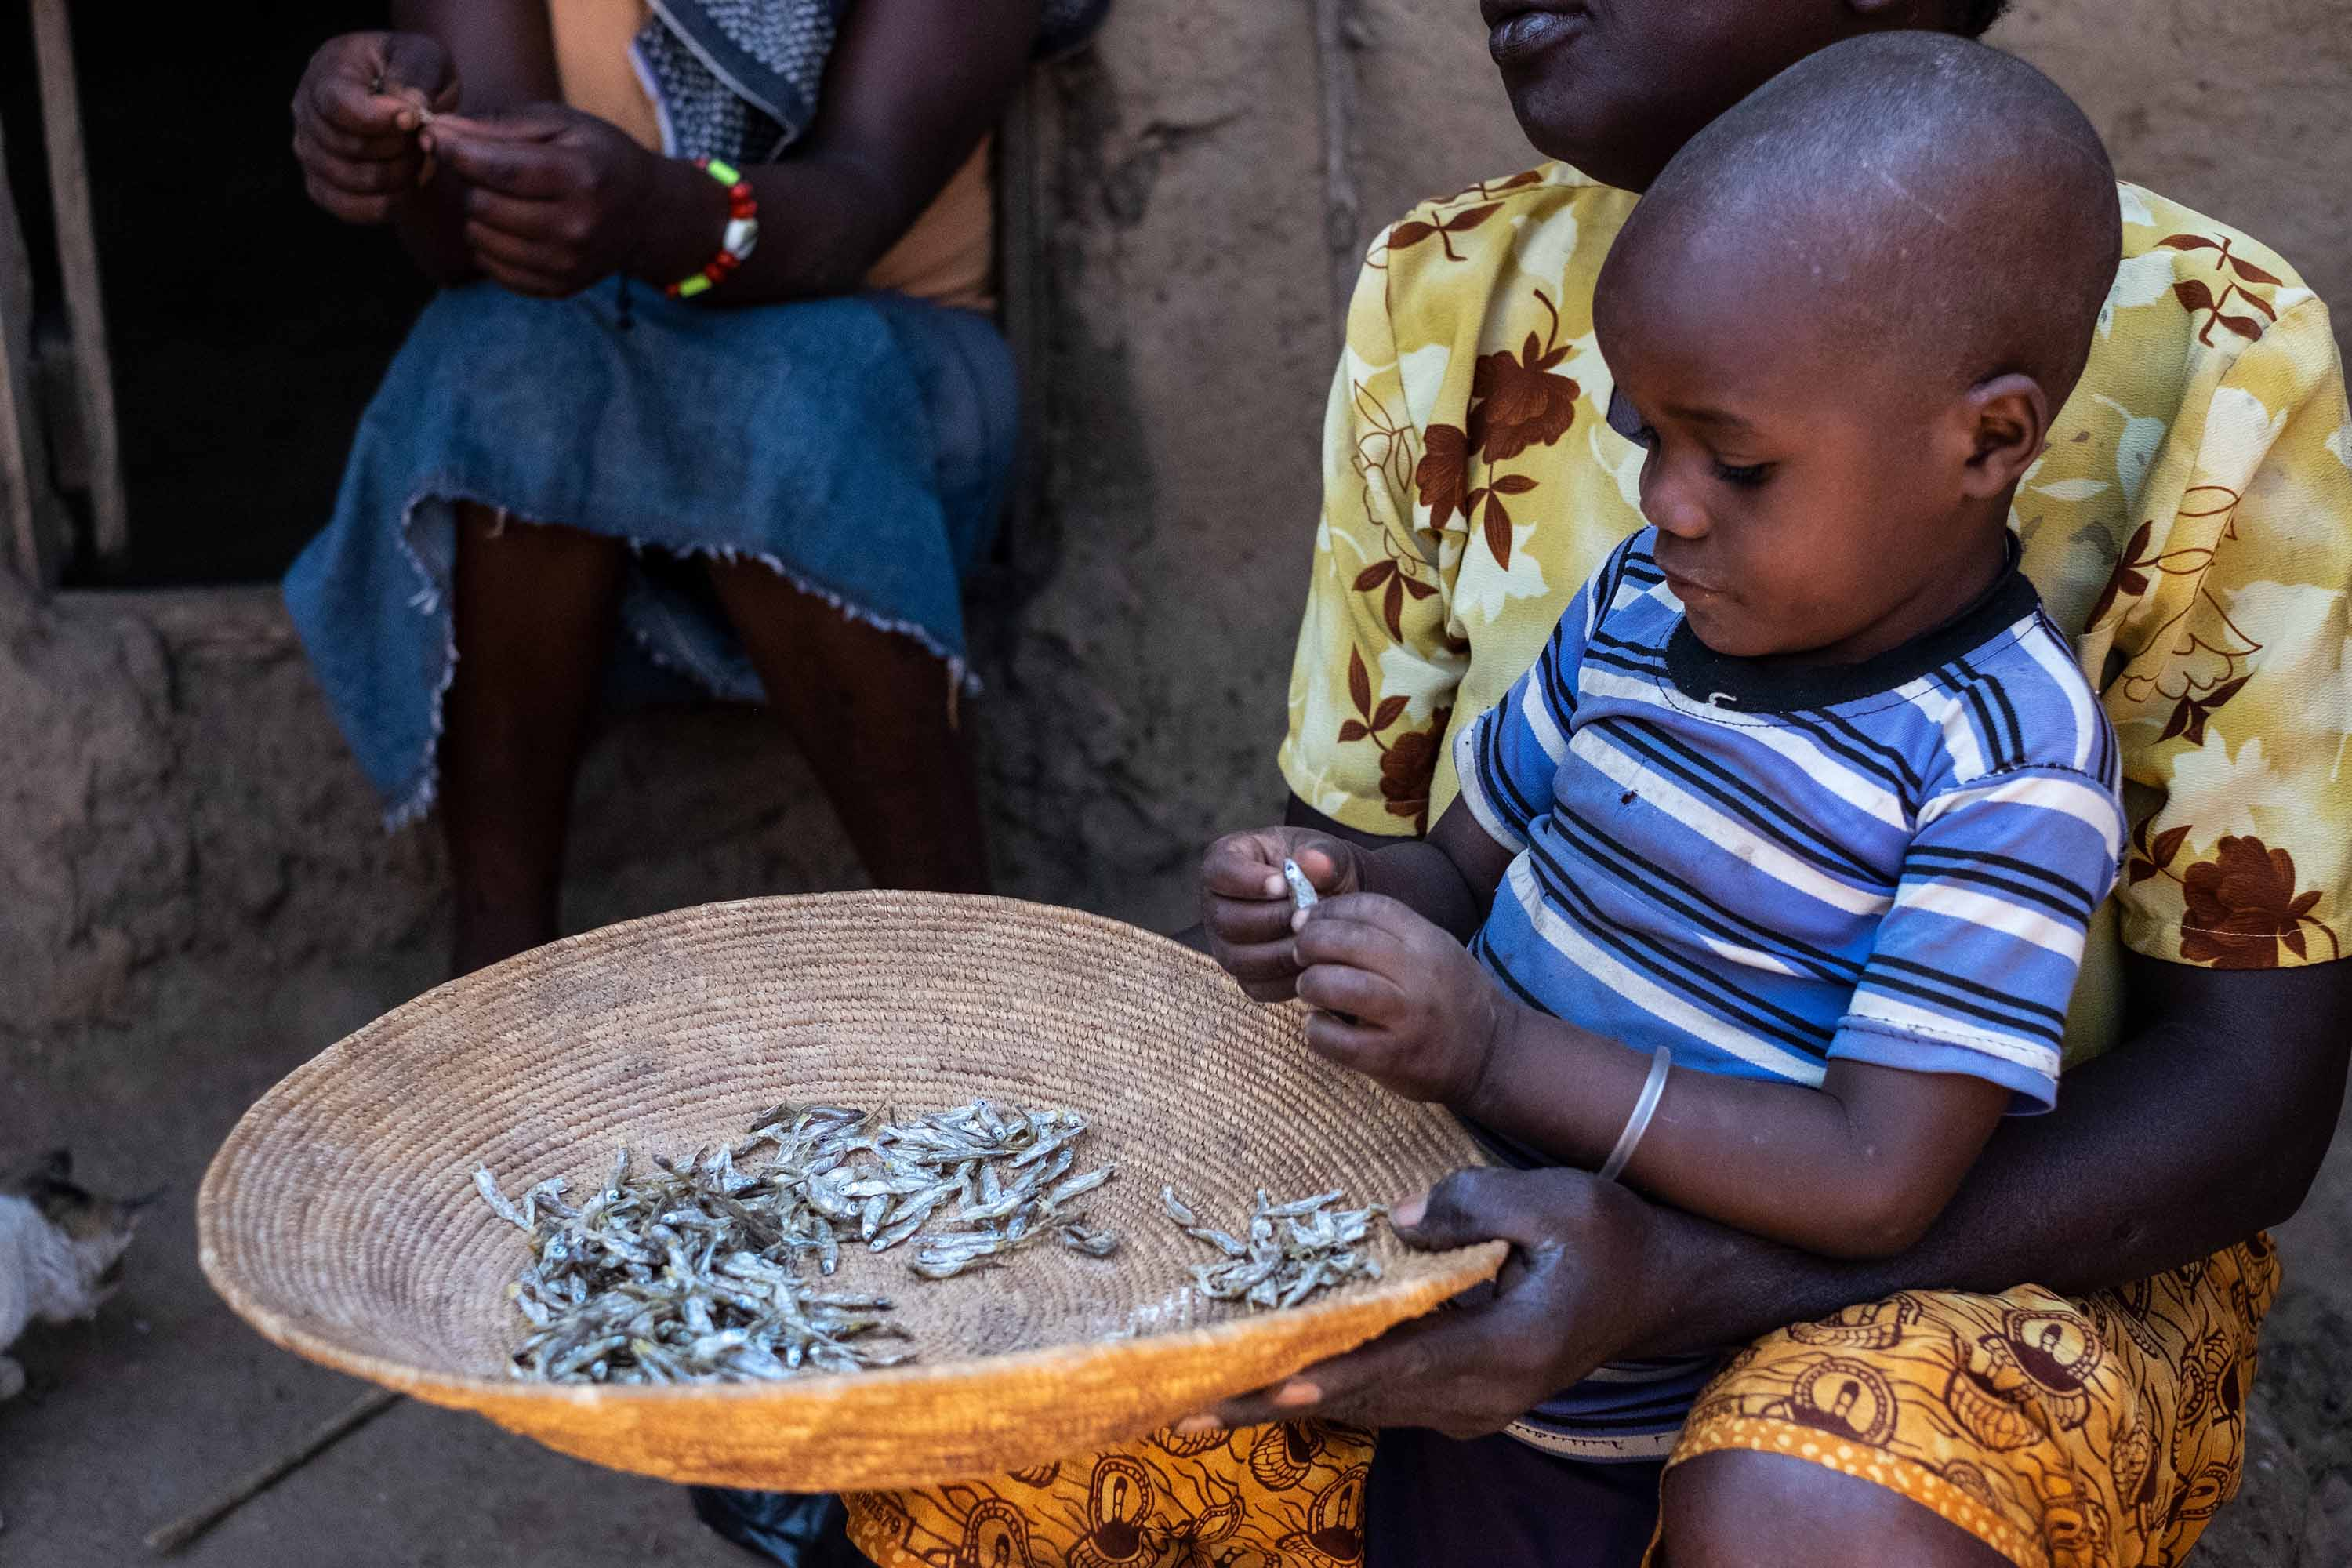 Christina Wambura, 64, and her son parsing dried fish in their backyard.